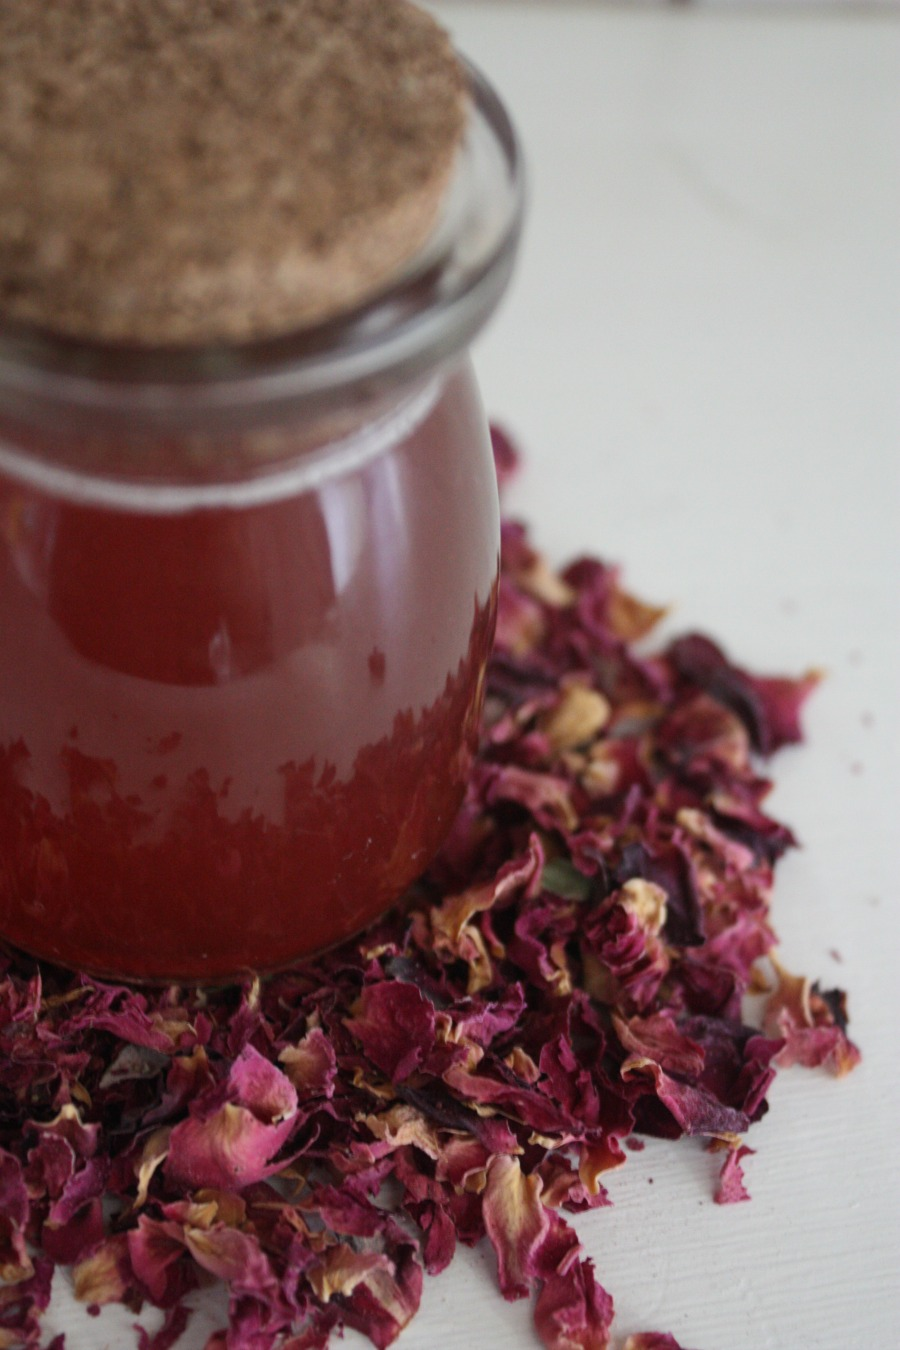 34 Ways To Use Roses | Herbal Academy | If you're planning to harvest rose this season, you may be wondering how to put your bounty to good use. If so, we've gathered 34 DIY rose recipes to help you make the most of your rose harvest!